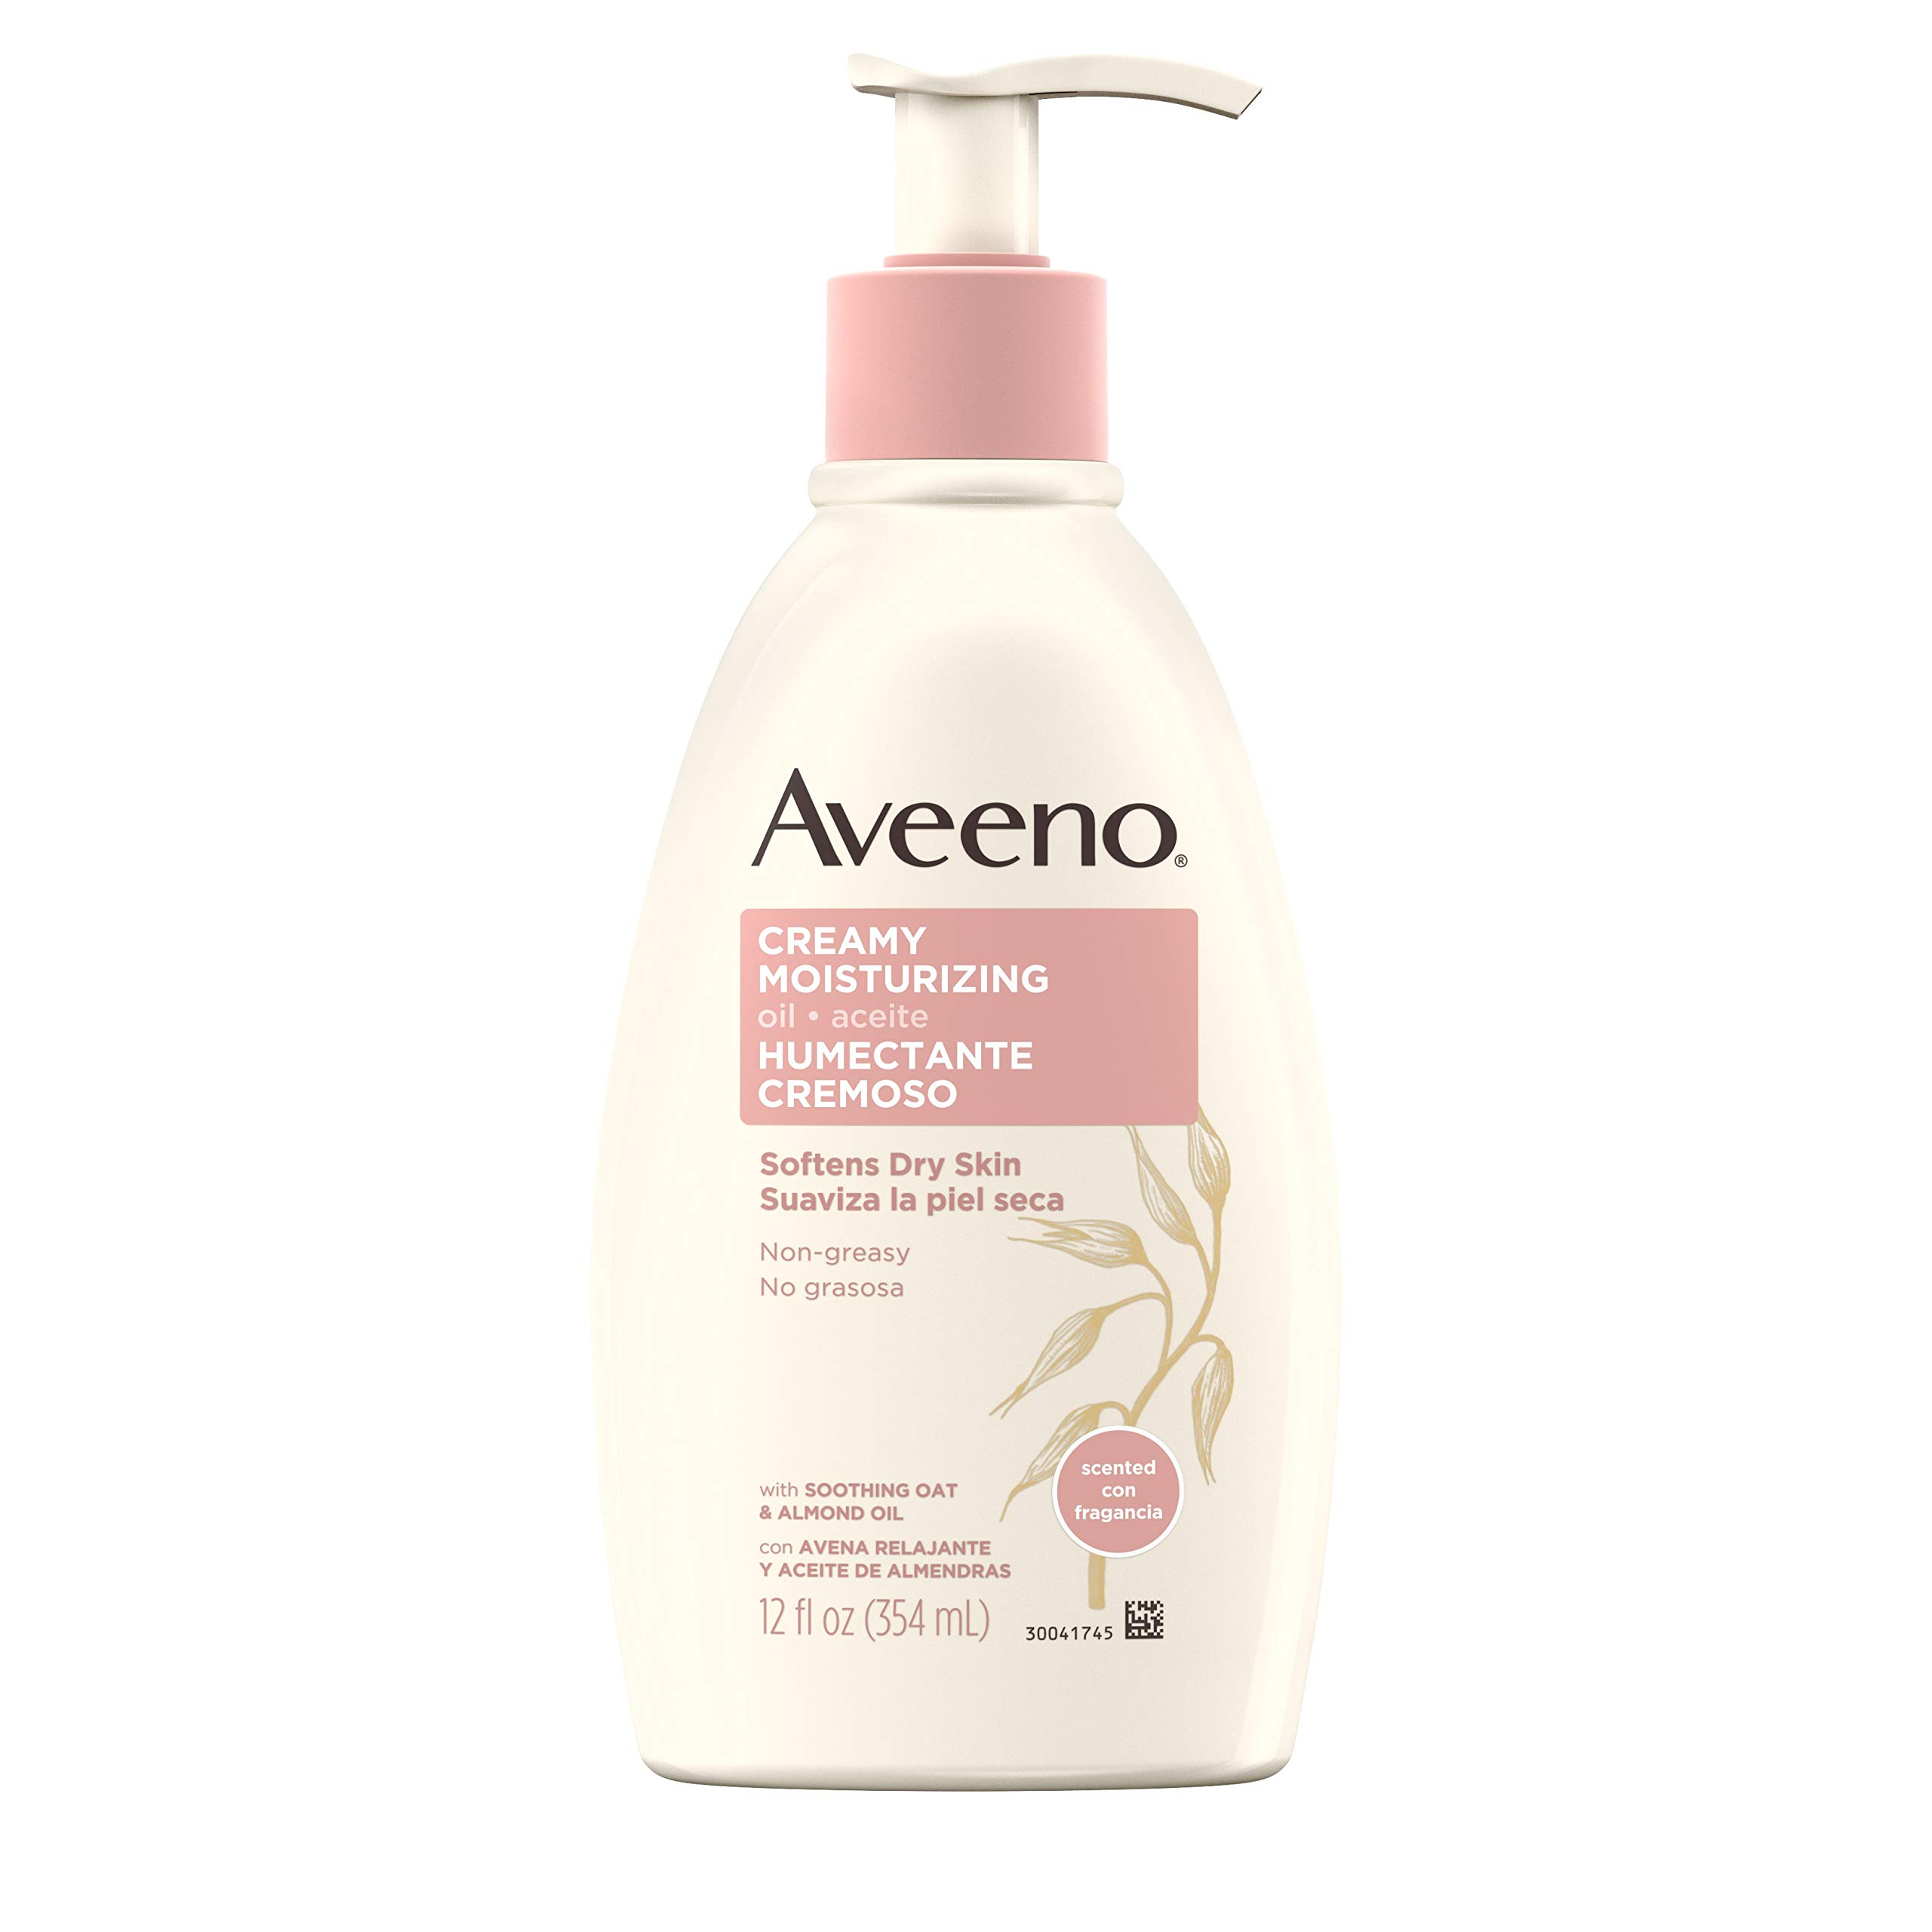 Aveeno Creamy Moisturizing Body Oil for Dry Skin with Soothing Oat, Sweet Almond & Sesame Oil, Non-Greasy Light Body Lotion with Light Fragrance, 12 fl. oz